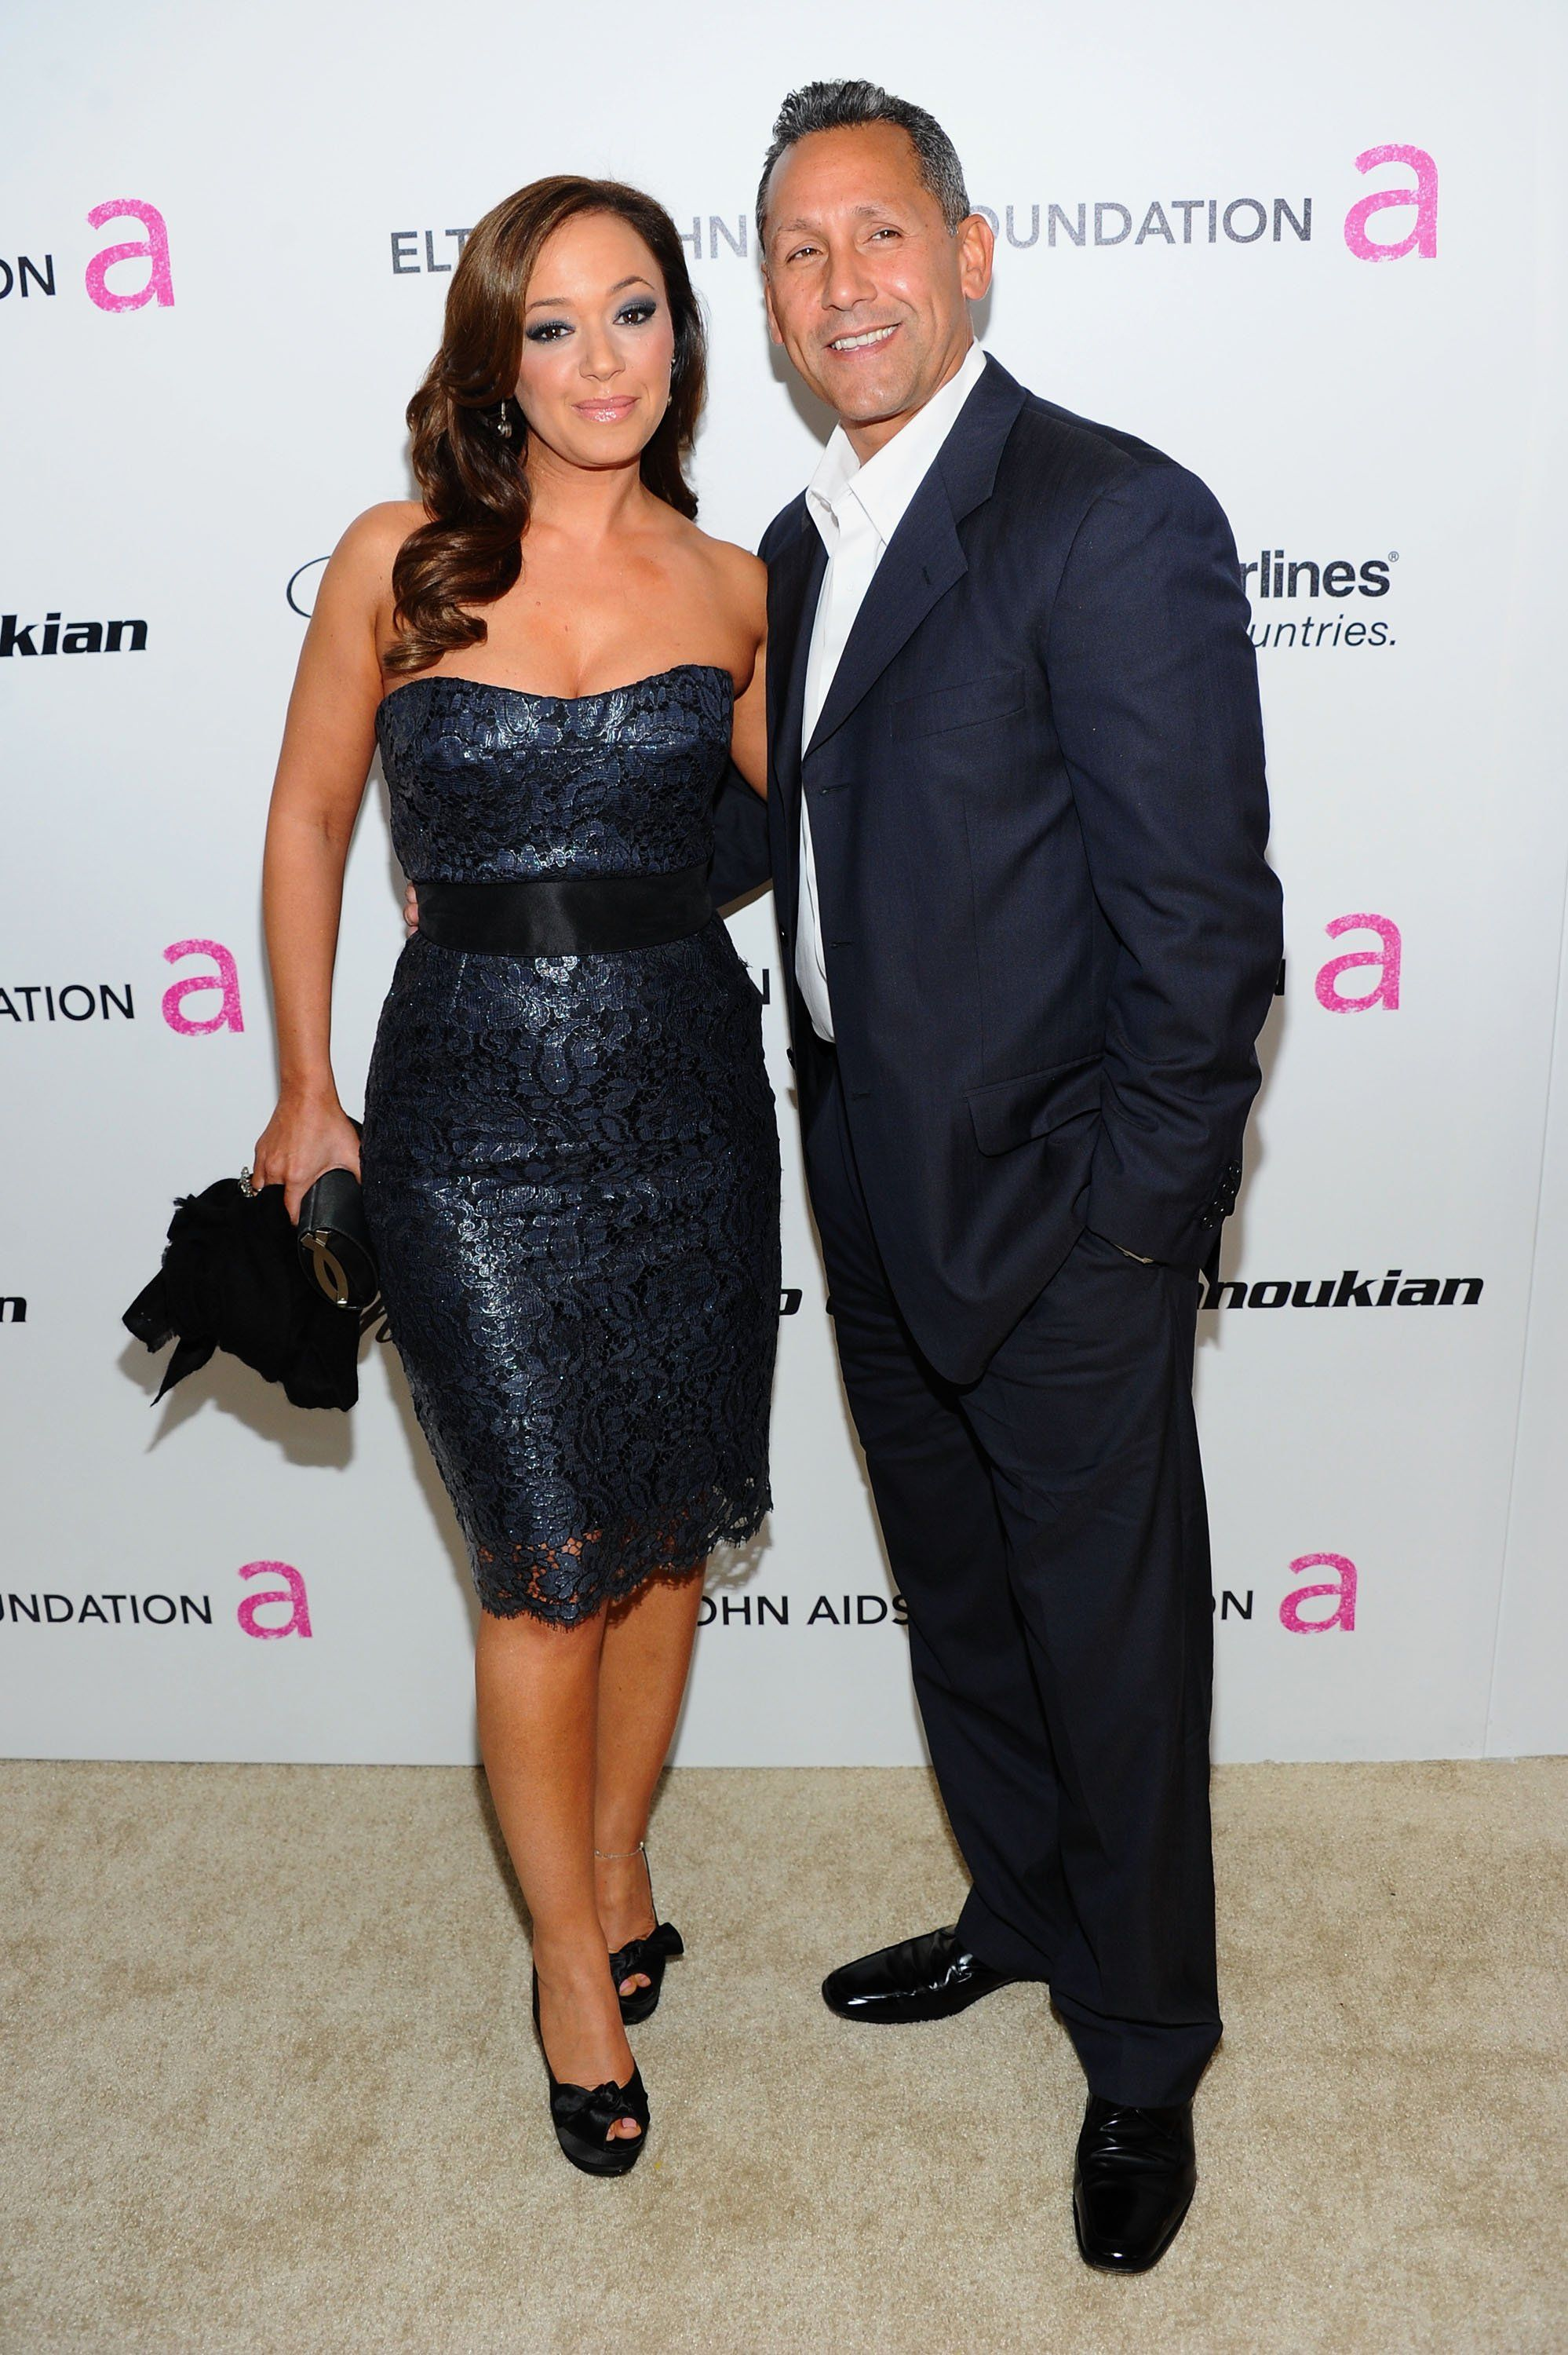 Leah Remini with fiancee Angelo Pagan - The Lili Clair Foundation 1st  Annual Benefit Dinner and AuctionPhoto by: Denise Truscello/WireImage.com